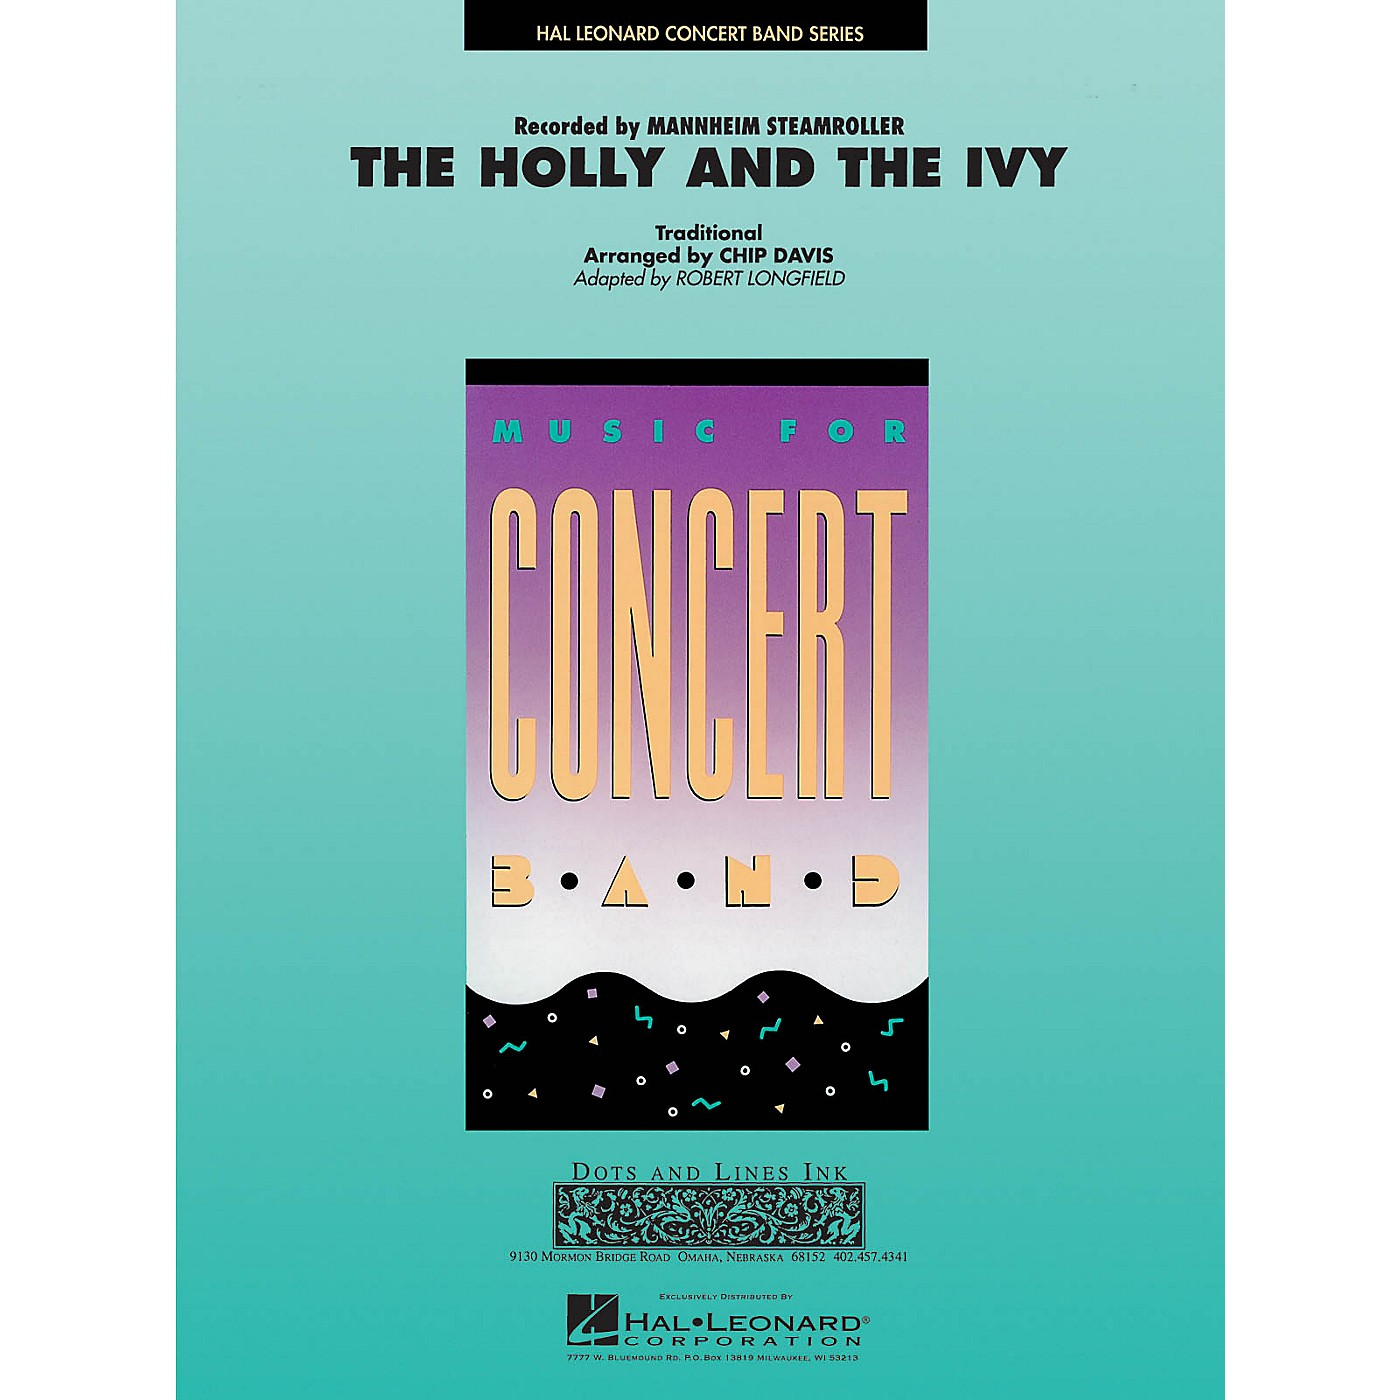 Hal Leonard The Holly and the Ivy Concert Band Level 3-4 by Mannheim Steamroller Arranged by Robert Longfield thumbnail